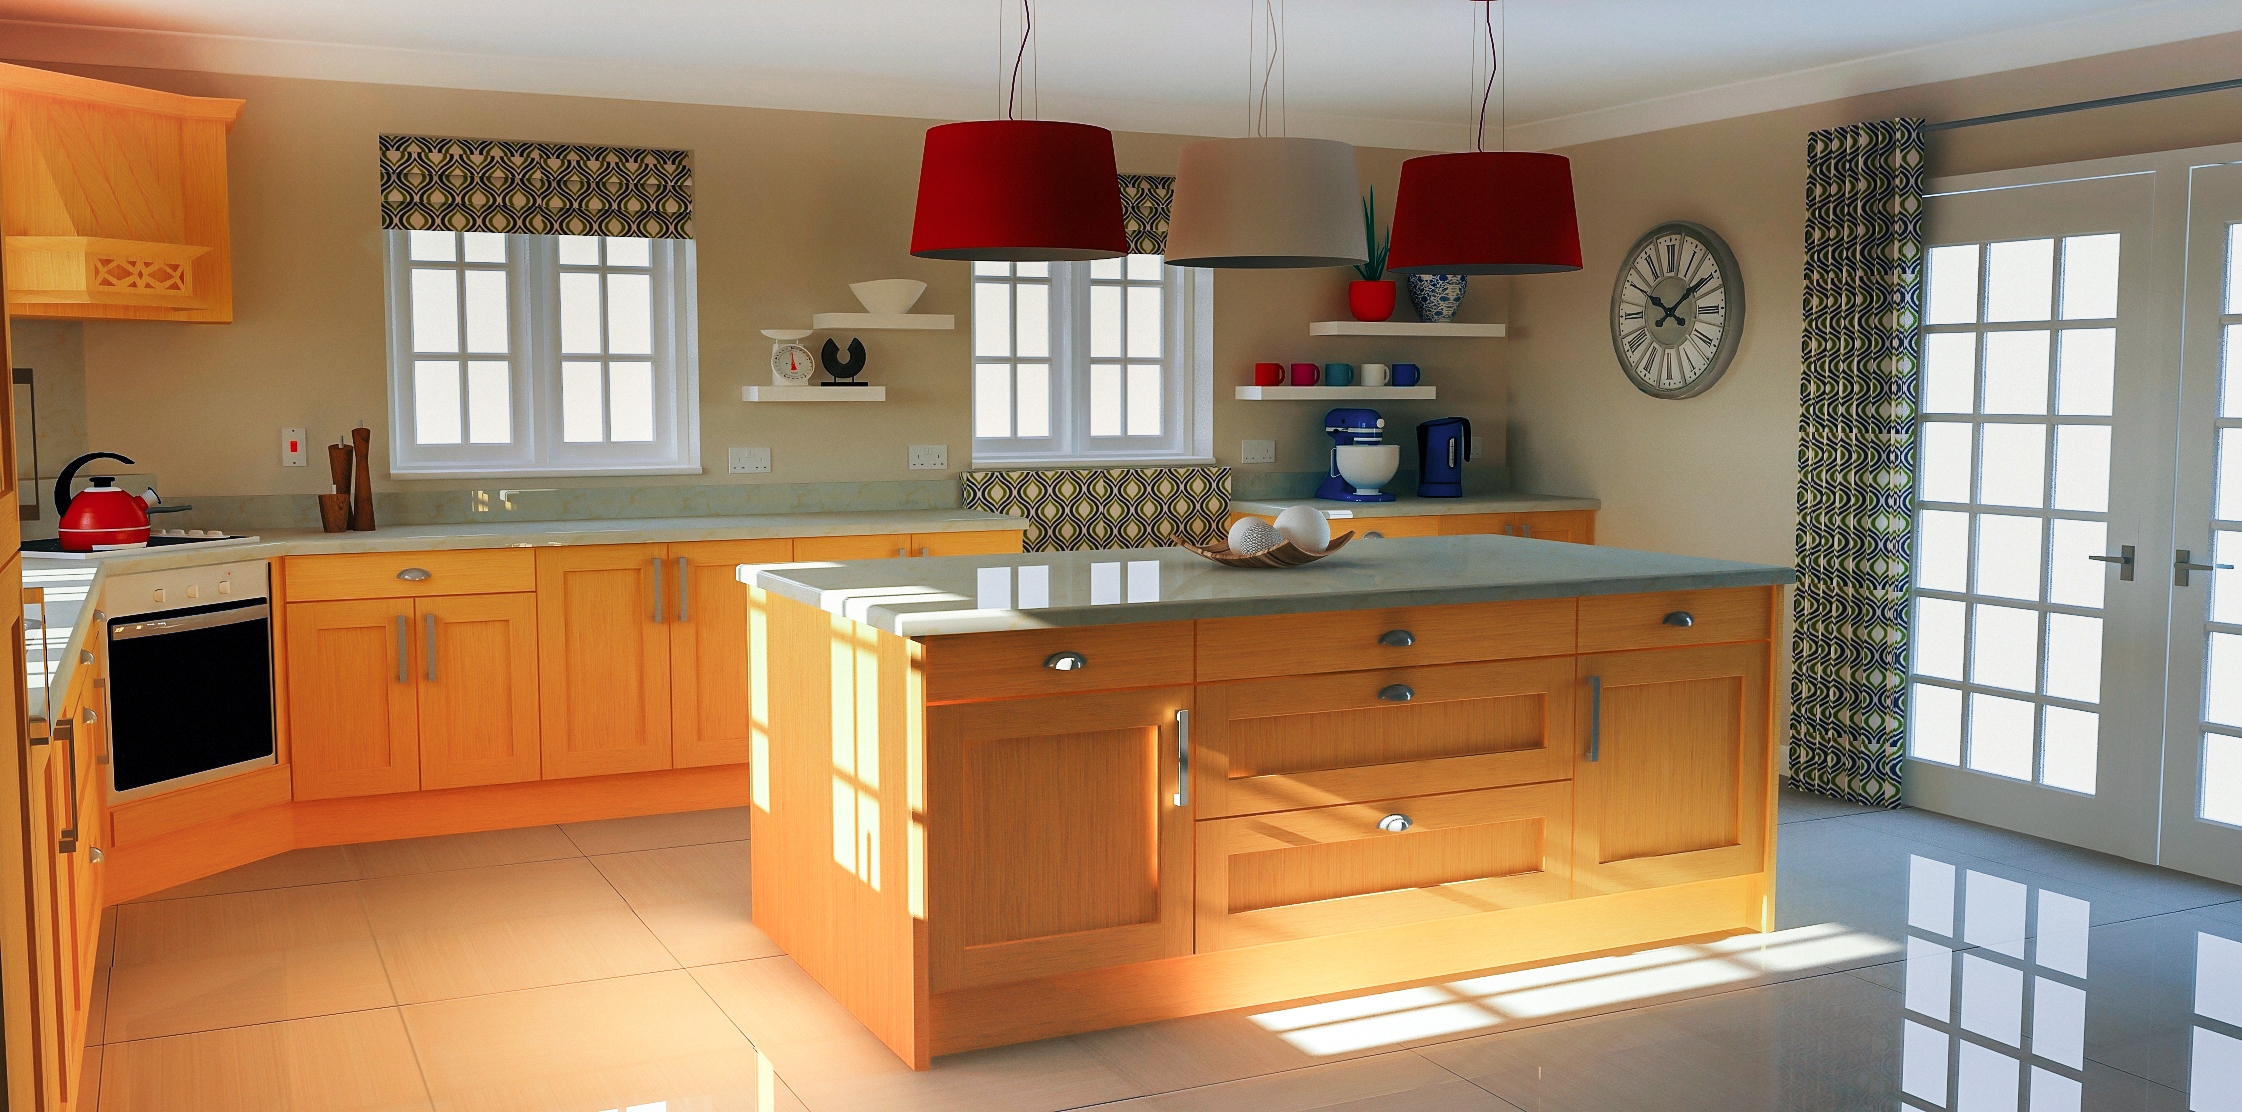 Diamond Kitchens & Interior Designs